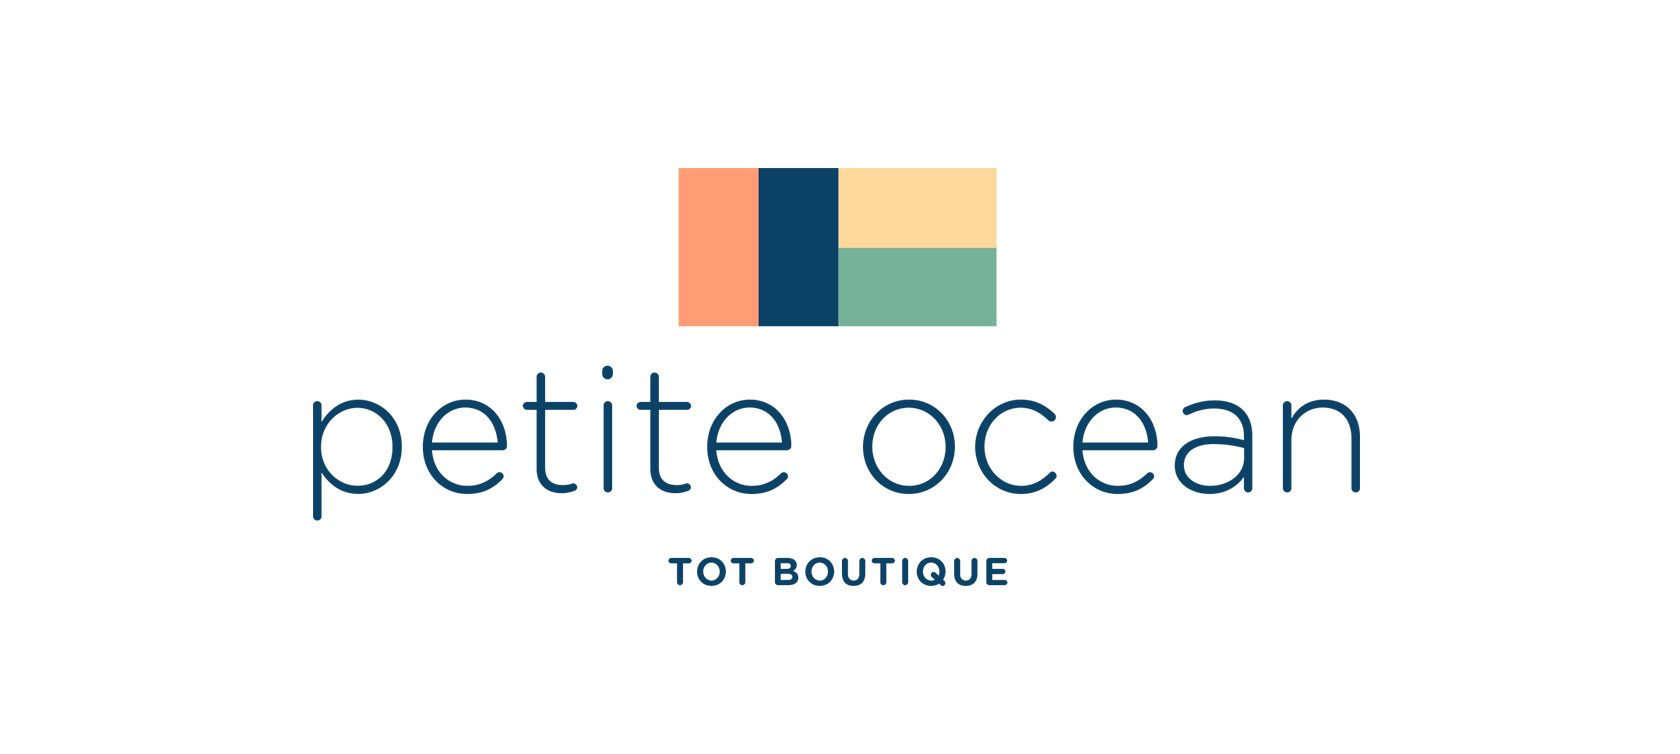 Petite Ocean Logo and Branding Design by Furia